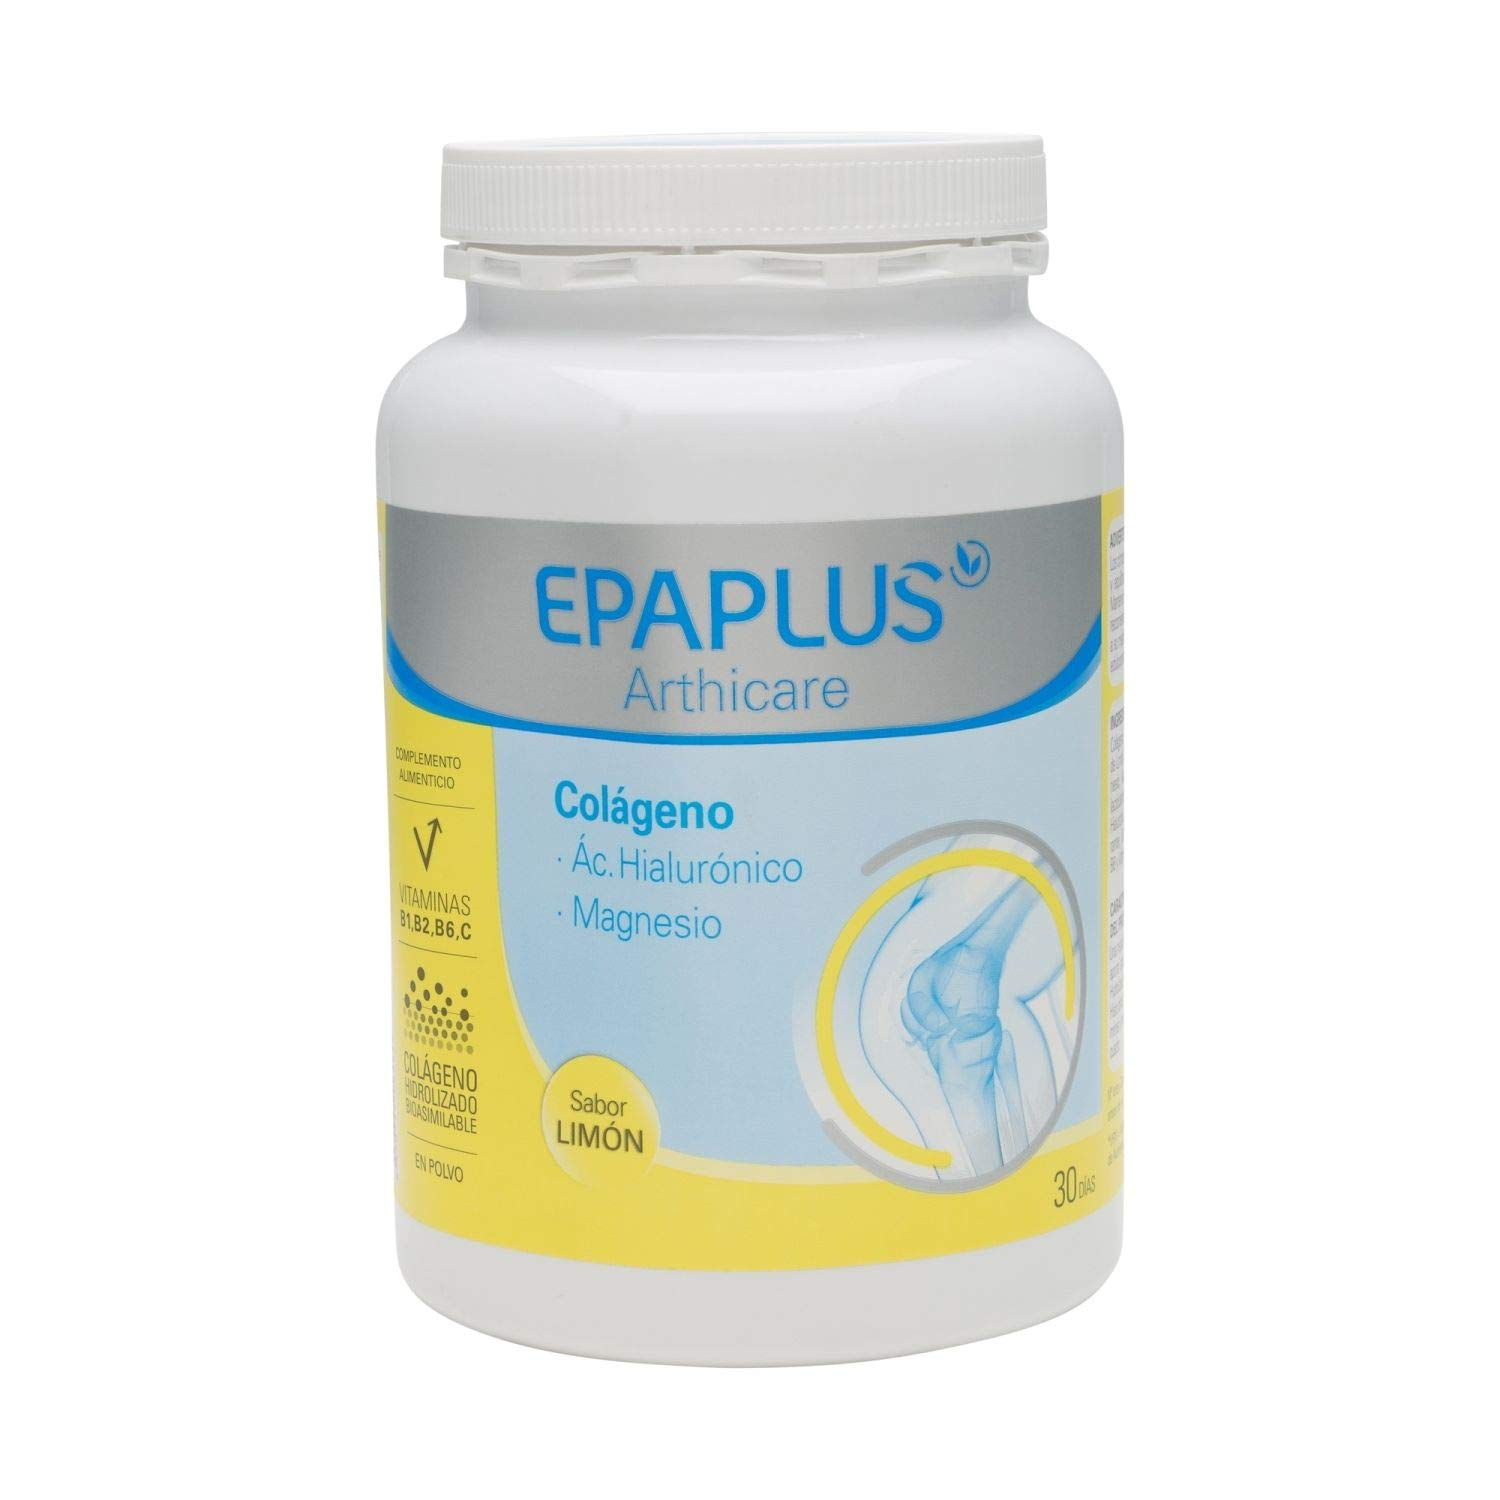 Amazon.com: Epaplus Collagen + Hyaluronic + Magnesium Lemon Flavour 30 Days Powder 332GR / Keep Joints Flexible/Prevent Cartilage Damage: Health & Personal ...